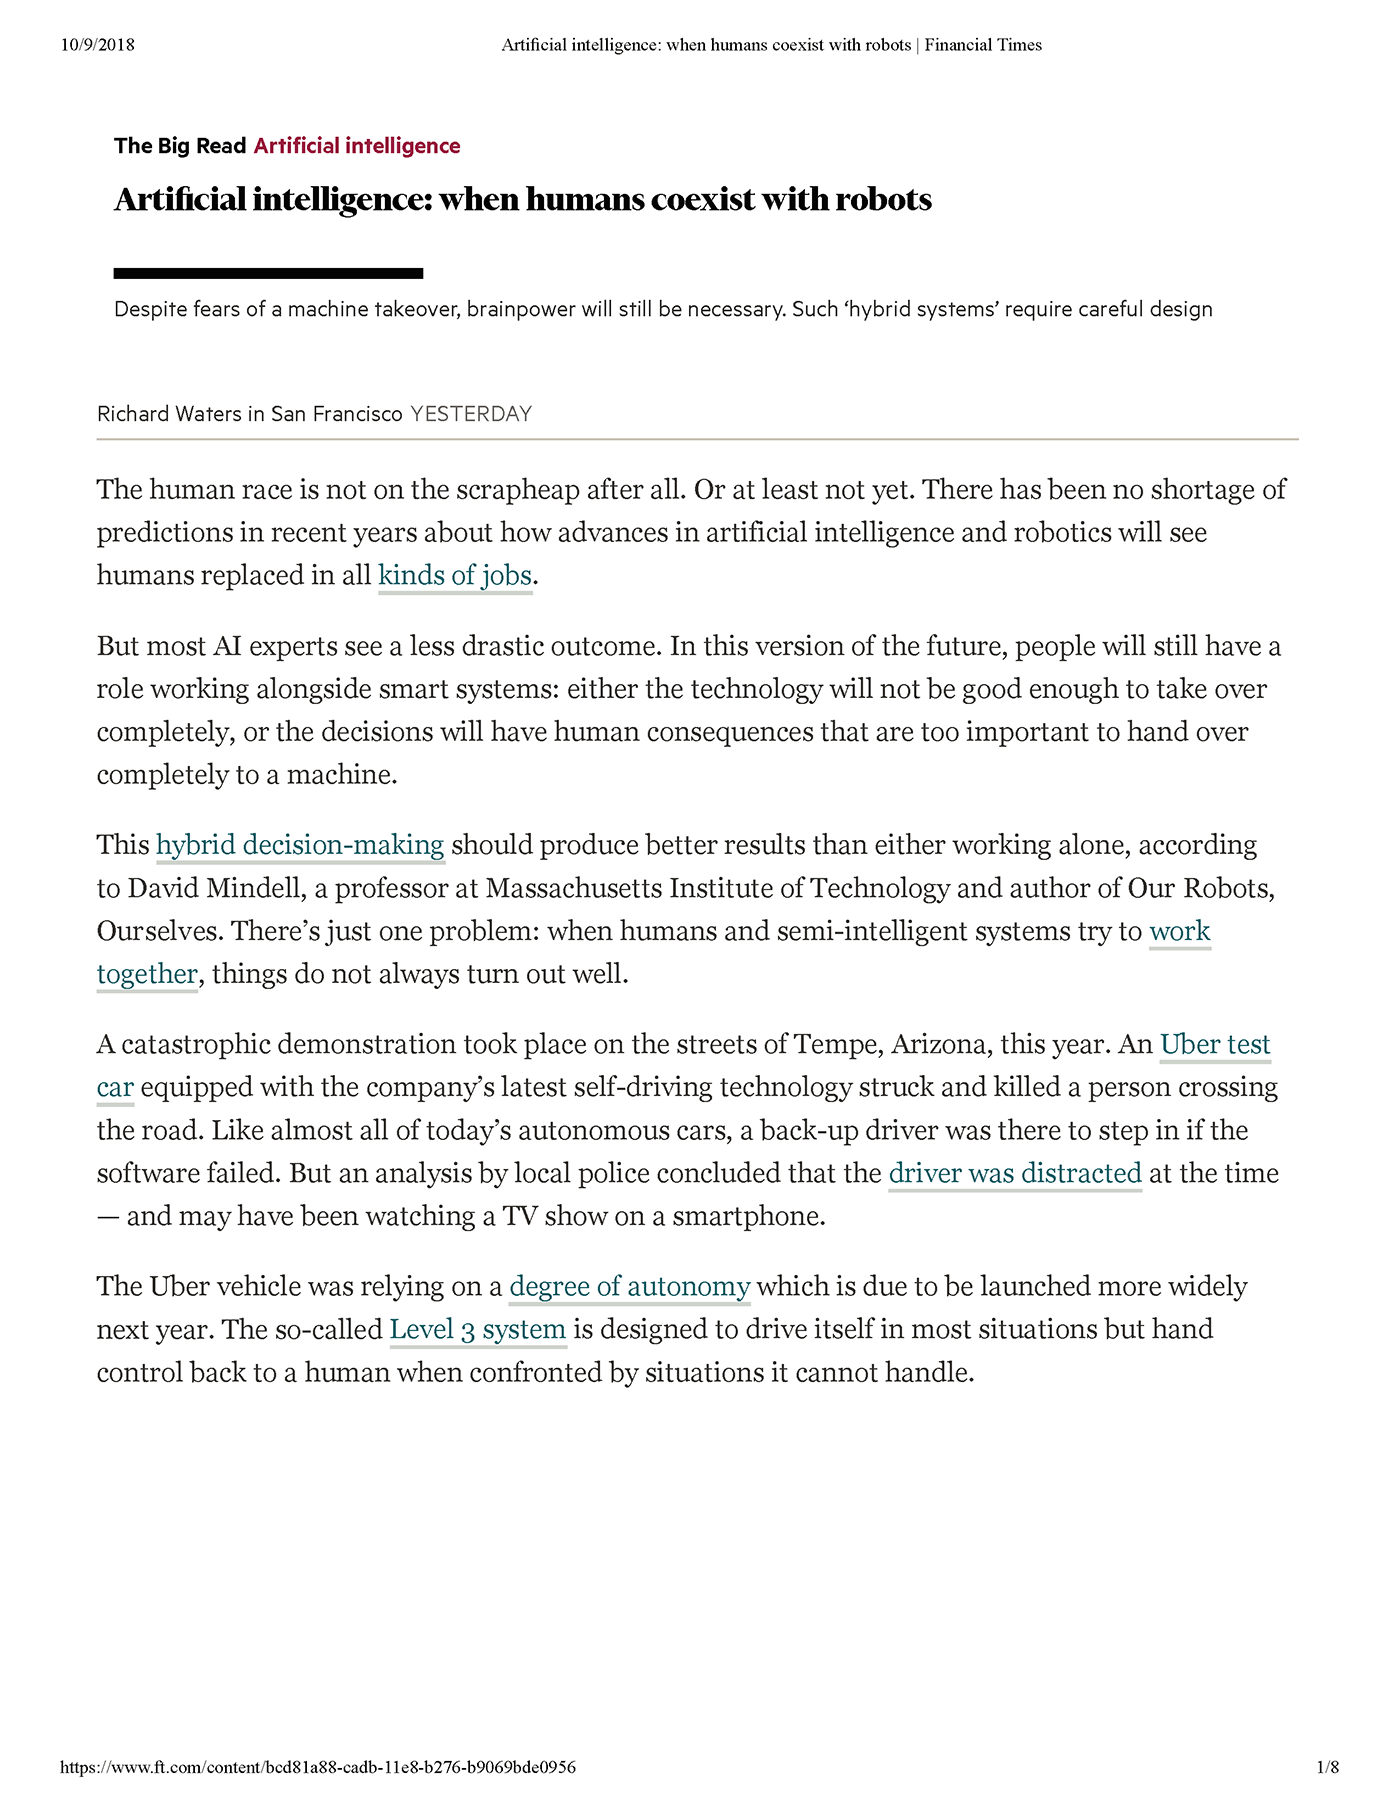 Article: Artificial Intelligence: When Humans Coexist with Robots, page 1